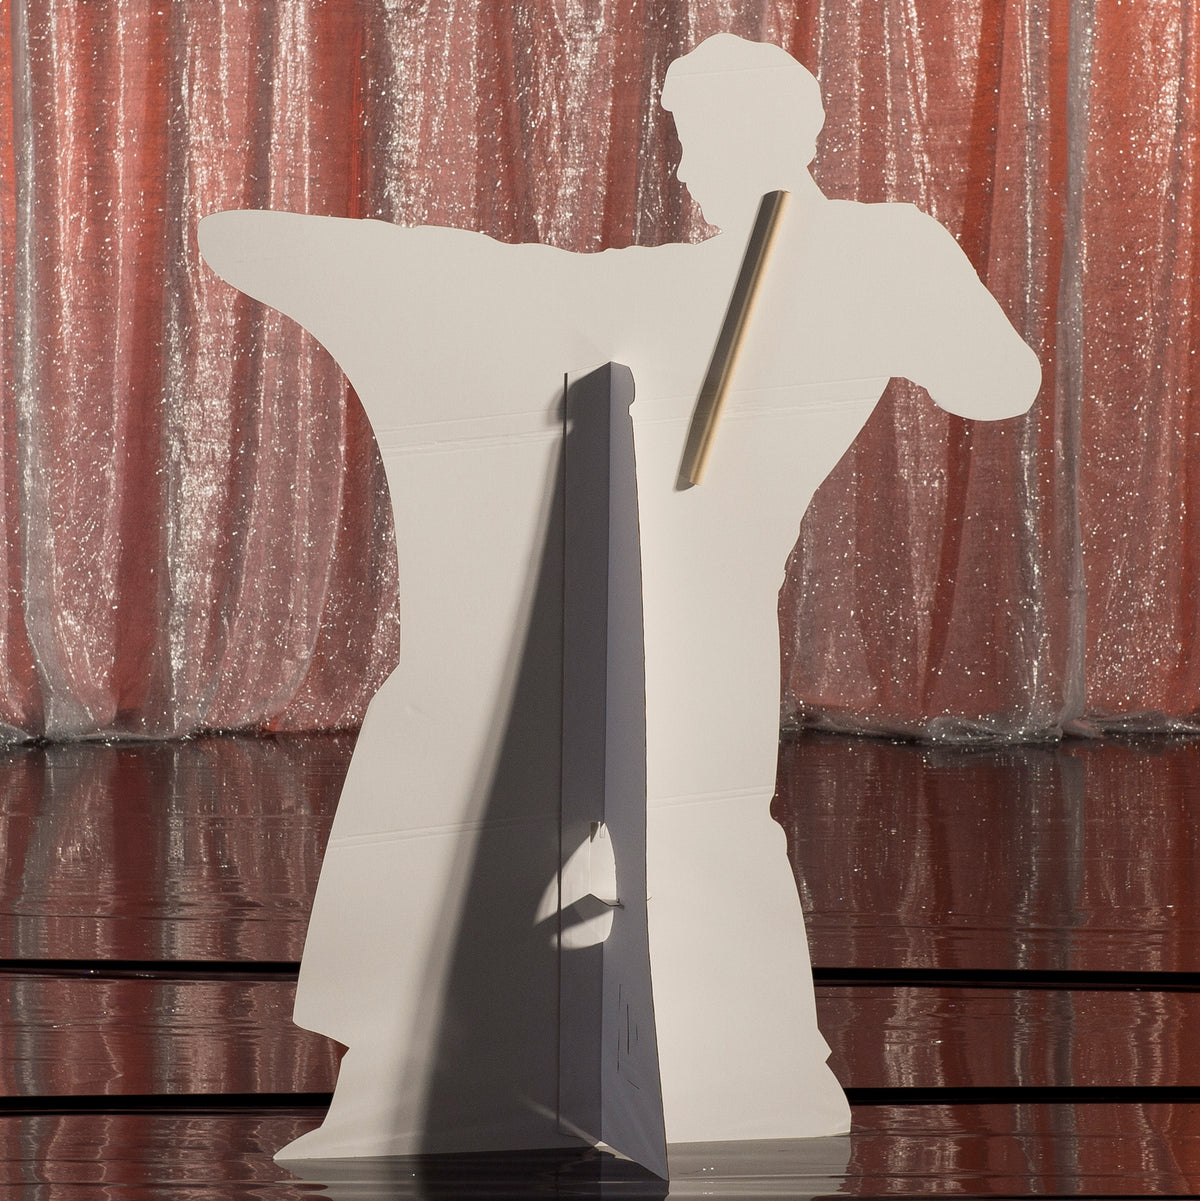 5 ft. 7 in. Studio 21 Silhouette Standee 1